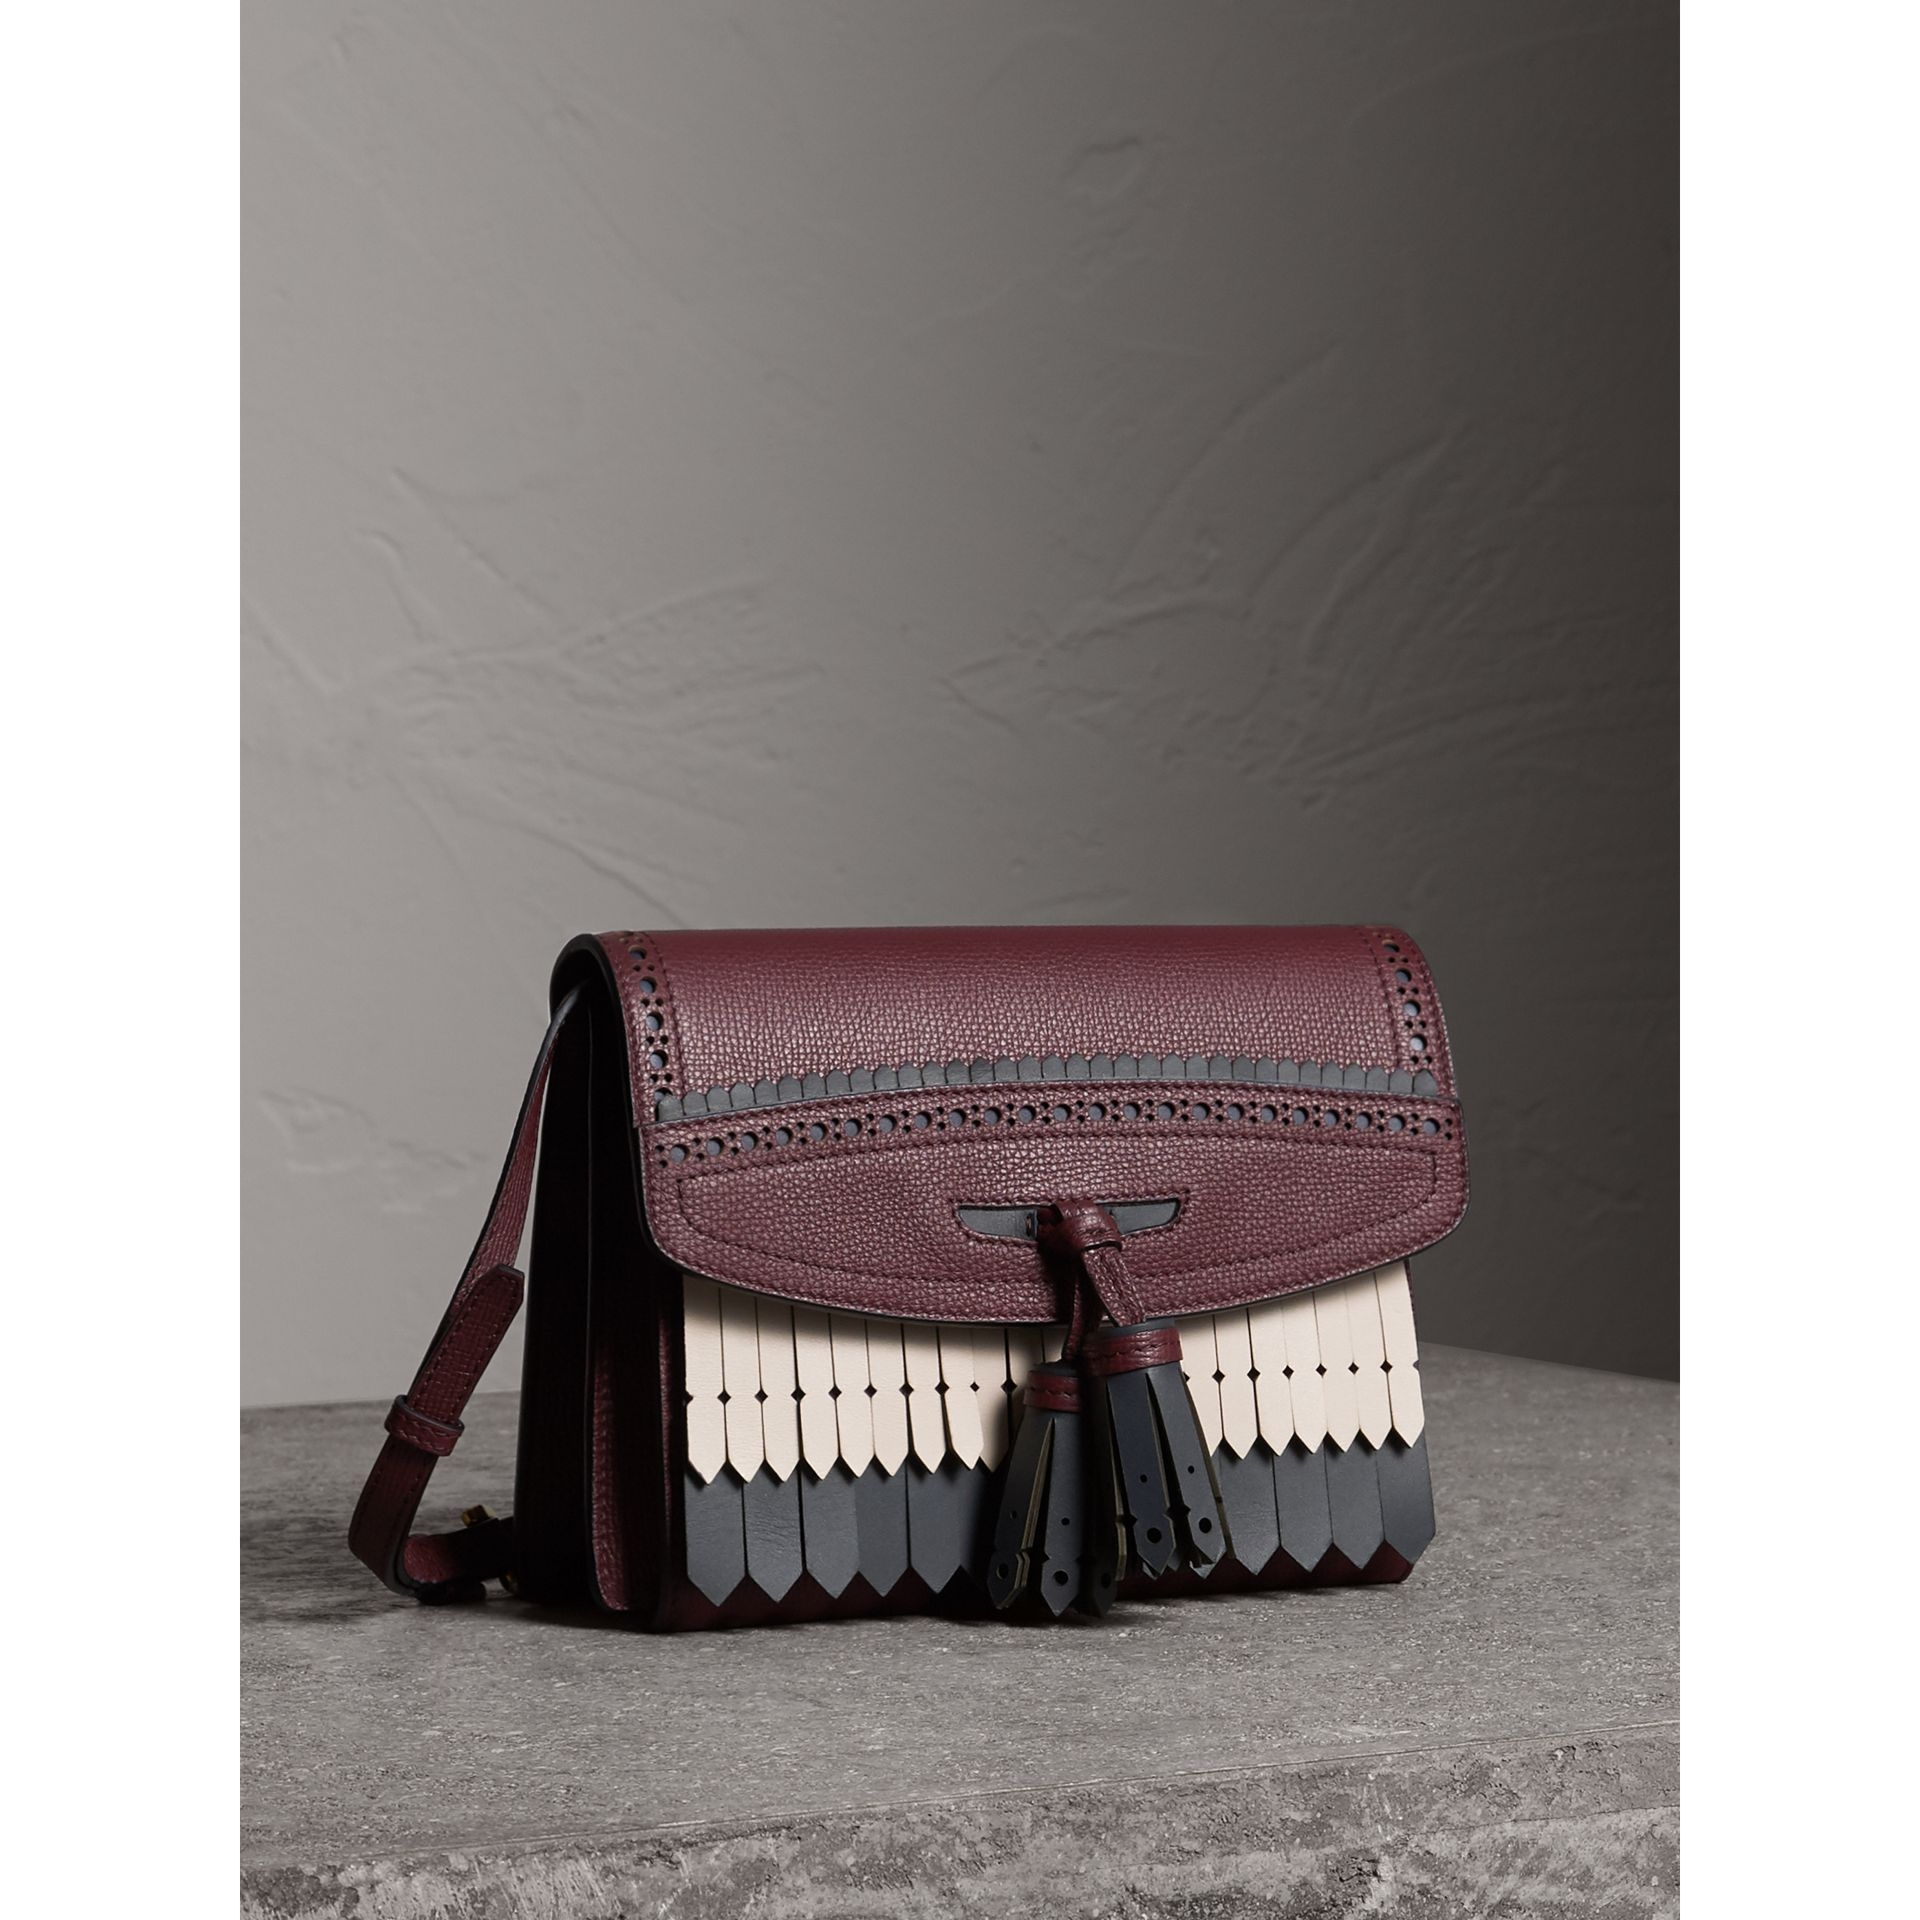 Brogue and Fringe Detail Leather Crossbody Bag in Mahogany Red - Women | Burberry - gallery image 6